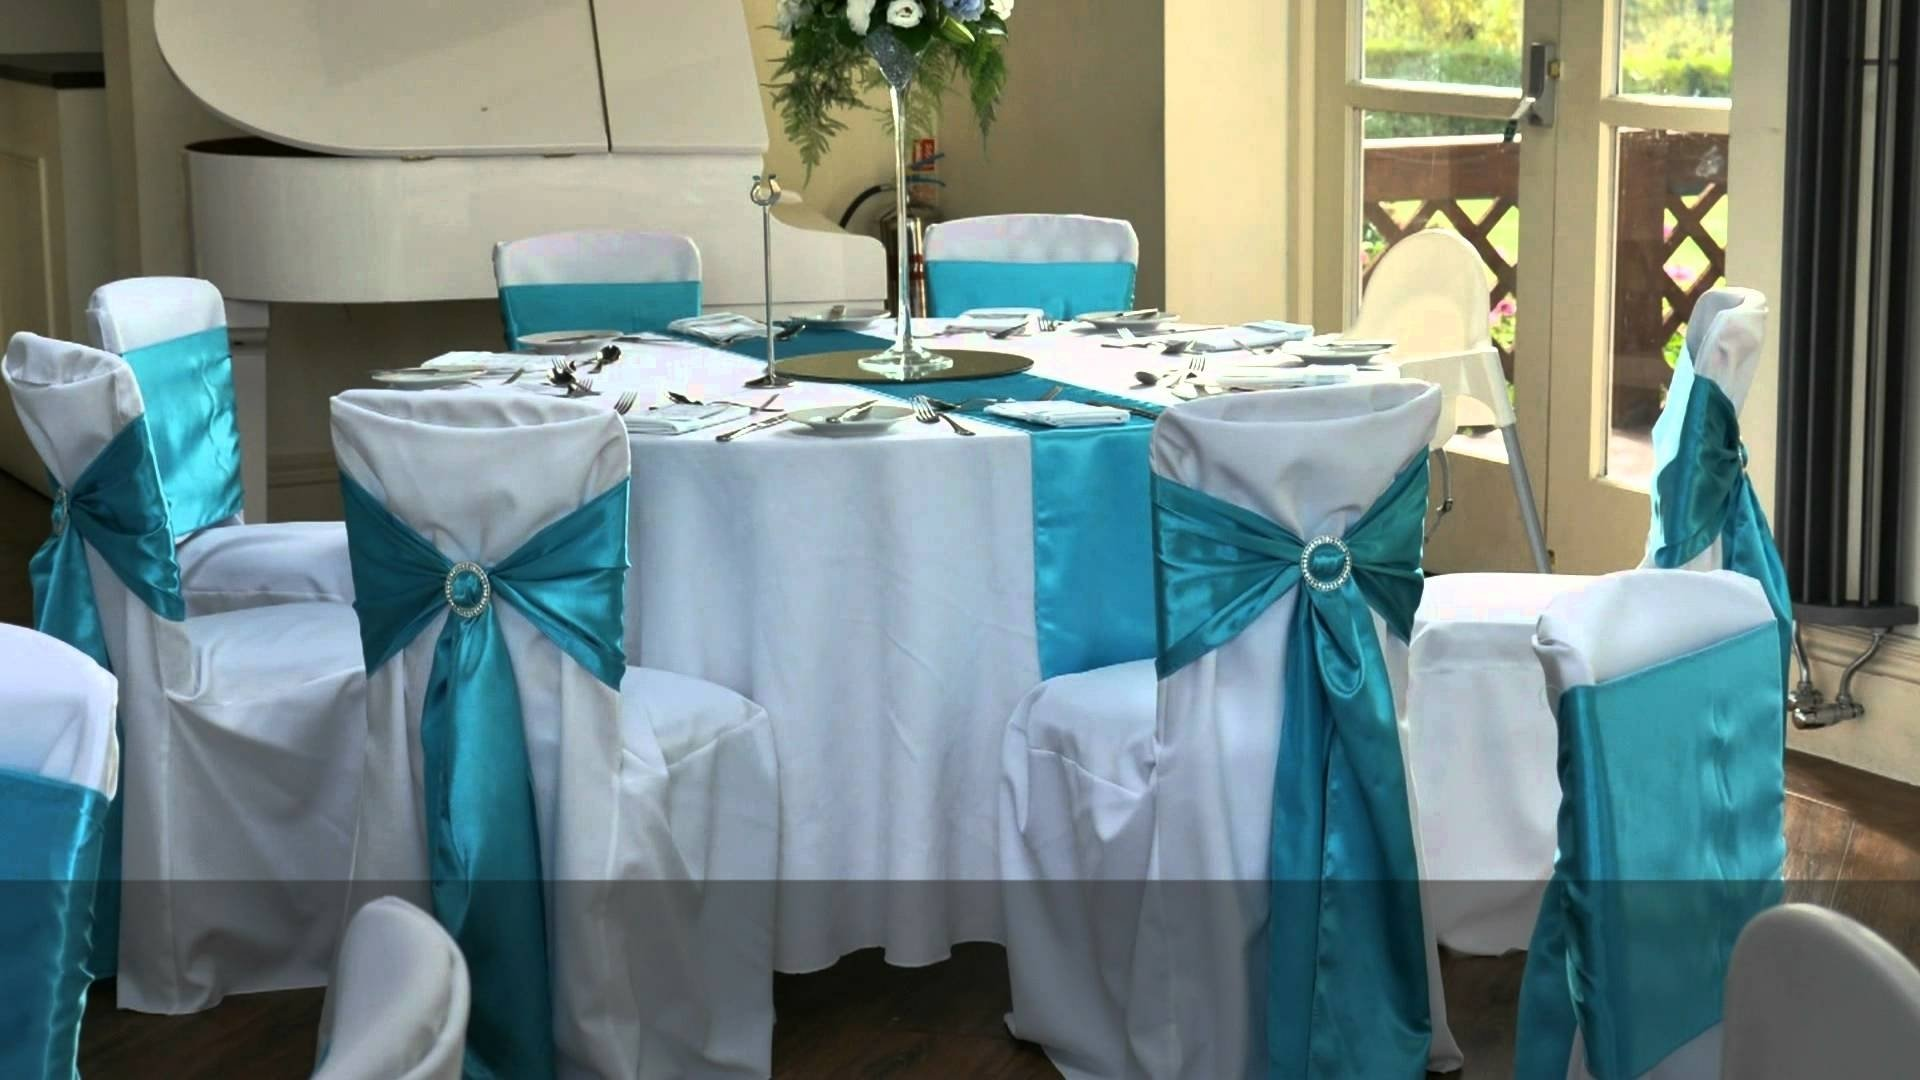 10 Attractive Tiffany Blue Wedding Theme Ideas tiffany blue style wedding m2t youtube 2020